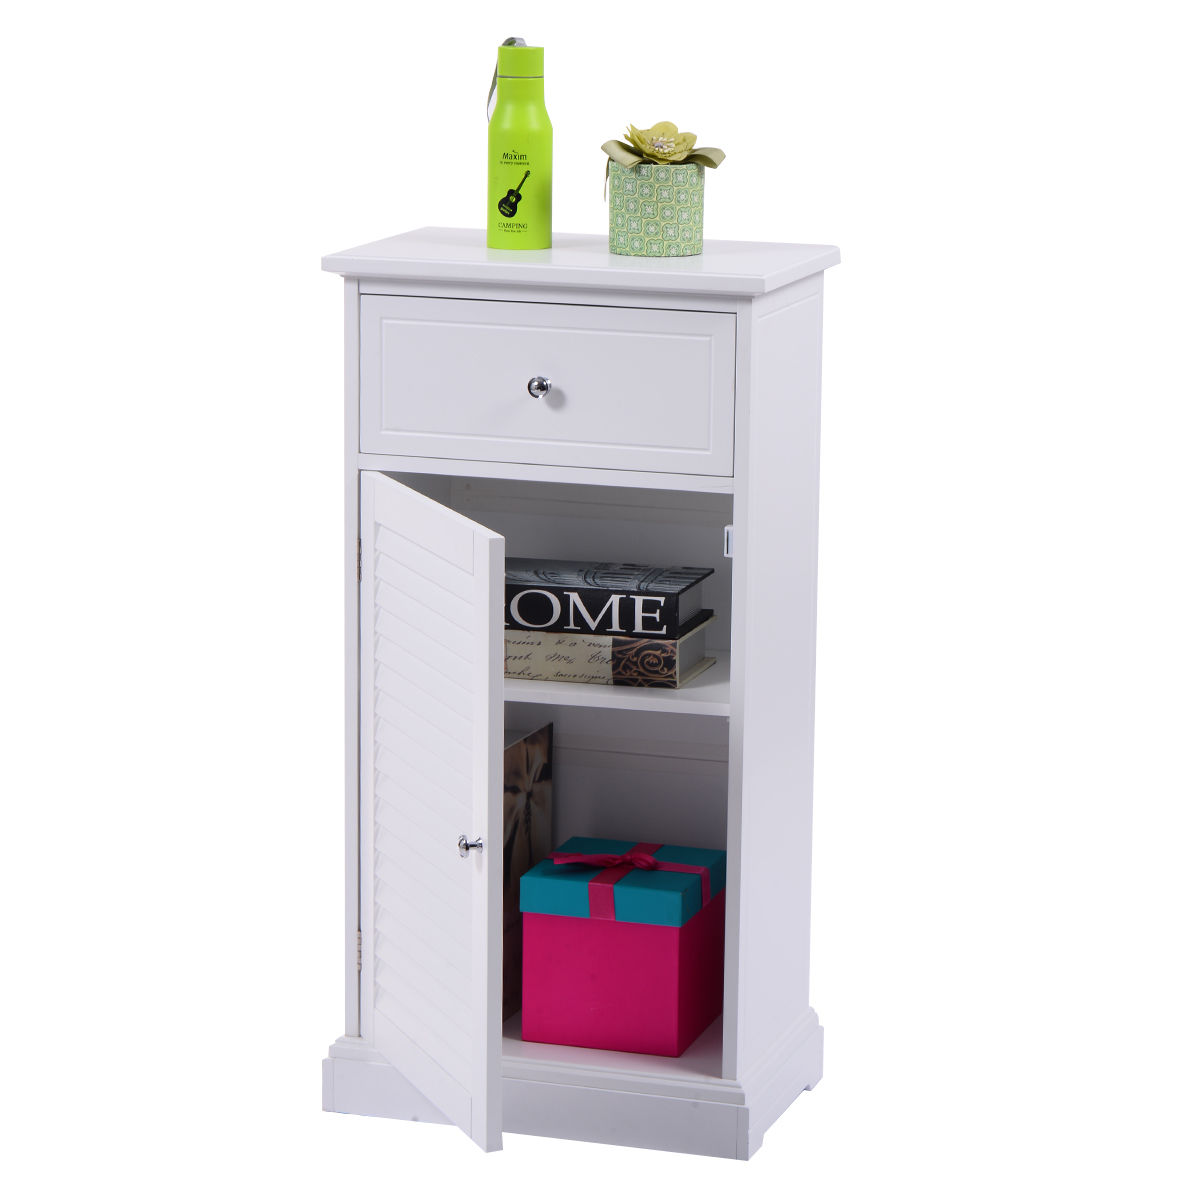 Giantex White Storage Floor Cabinet Modern Wall Shutter Door Bathroom Organizer Wood Cupboard Shelf Home Furniture HW53812 giantex rolling vintage wine cabinet bar stand wood storage holder liquor bottle shelf home furniture hw54830